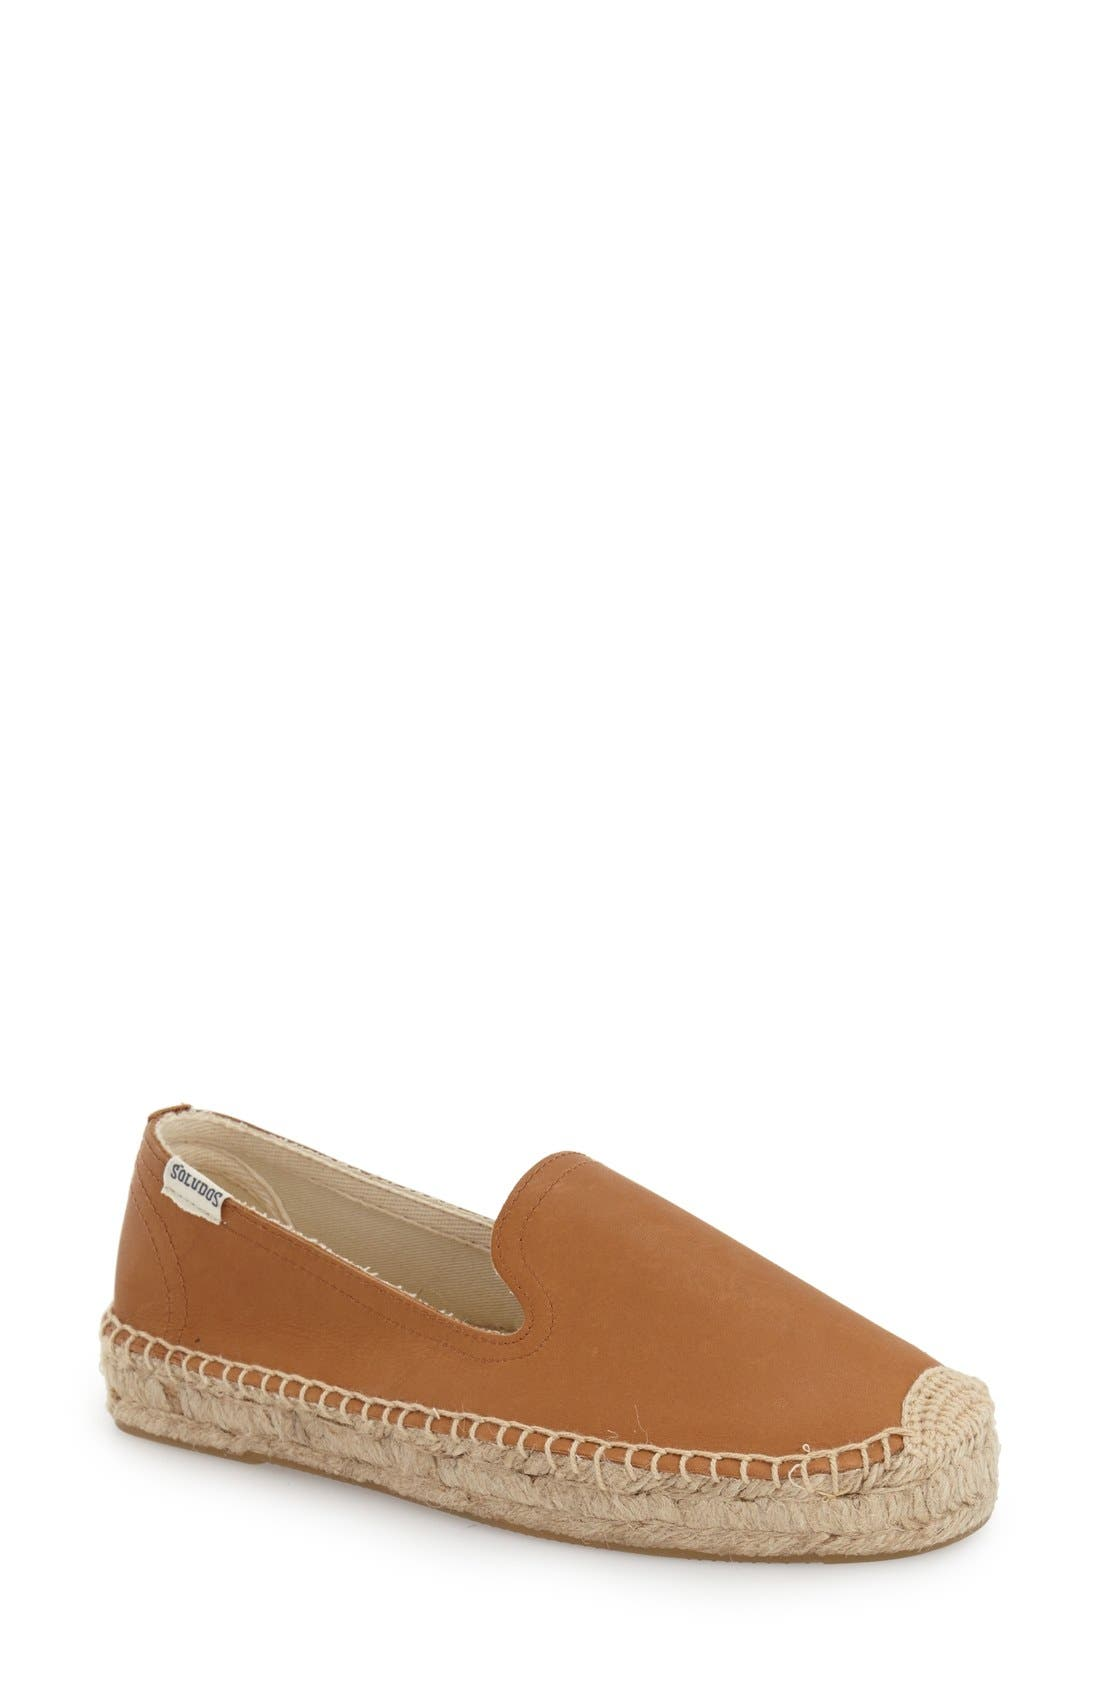 SOLUDOS, 'Smoking' Espadrille Platform Shoe, Main thumbnail 1, color, TAN LEATHER